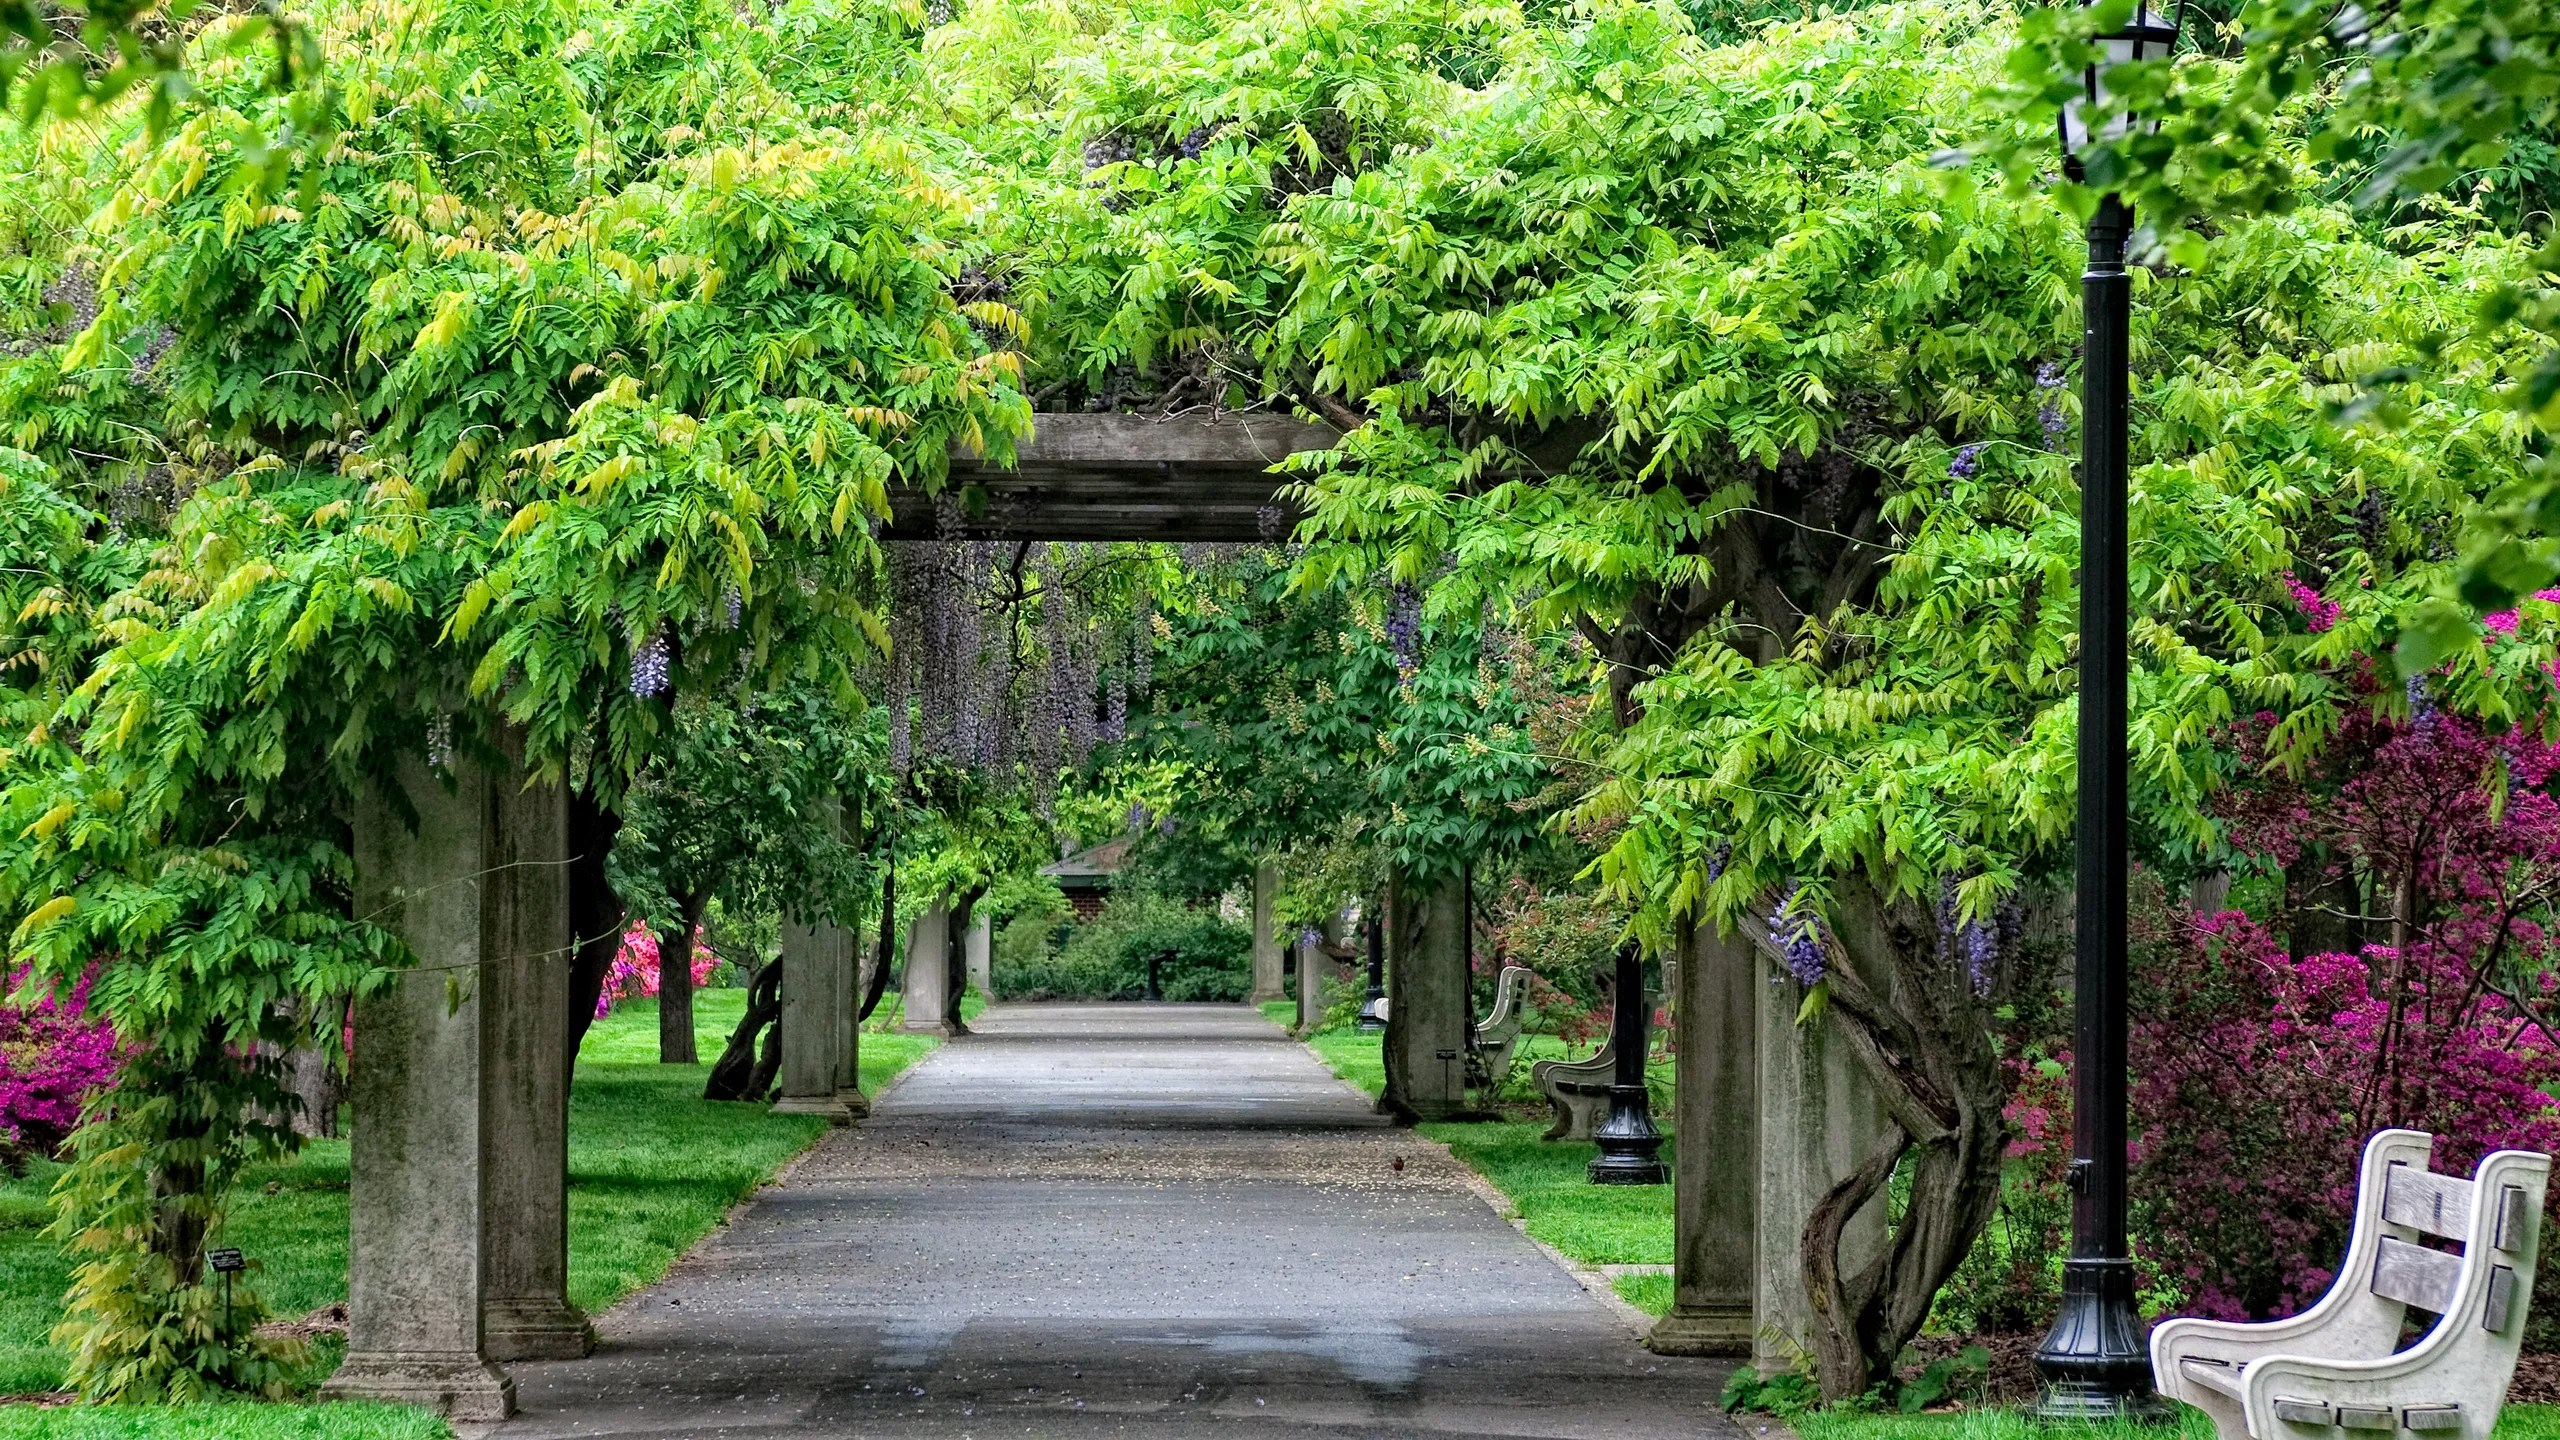 Bernstein the architects marion weiss and michael manfredi are well known at the brooklyn botanic garde. Brooklyn Botanic Garden Park Review Conde Nast Traveler